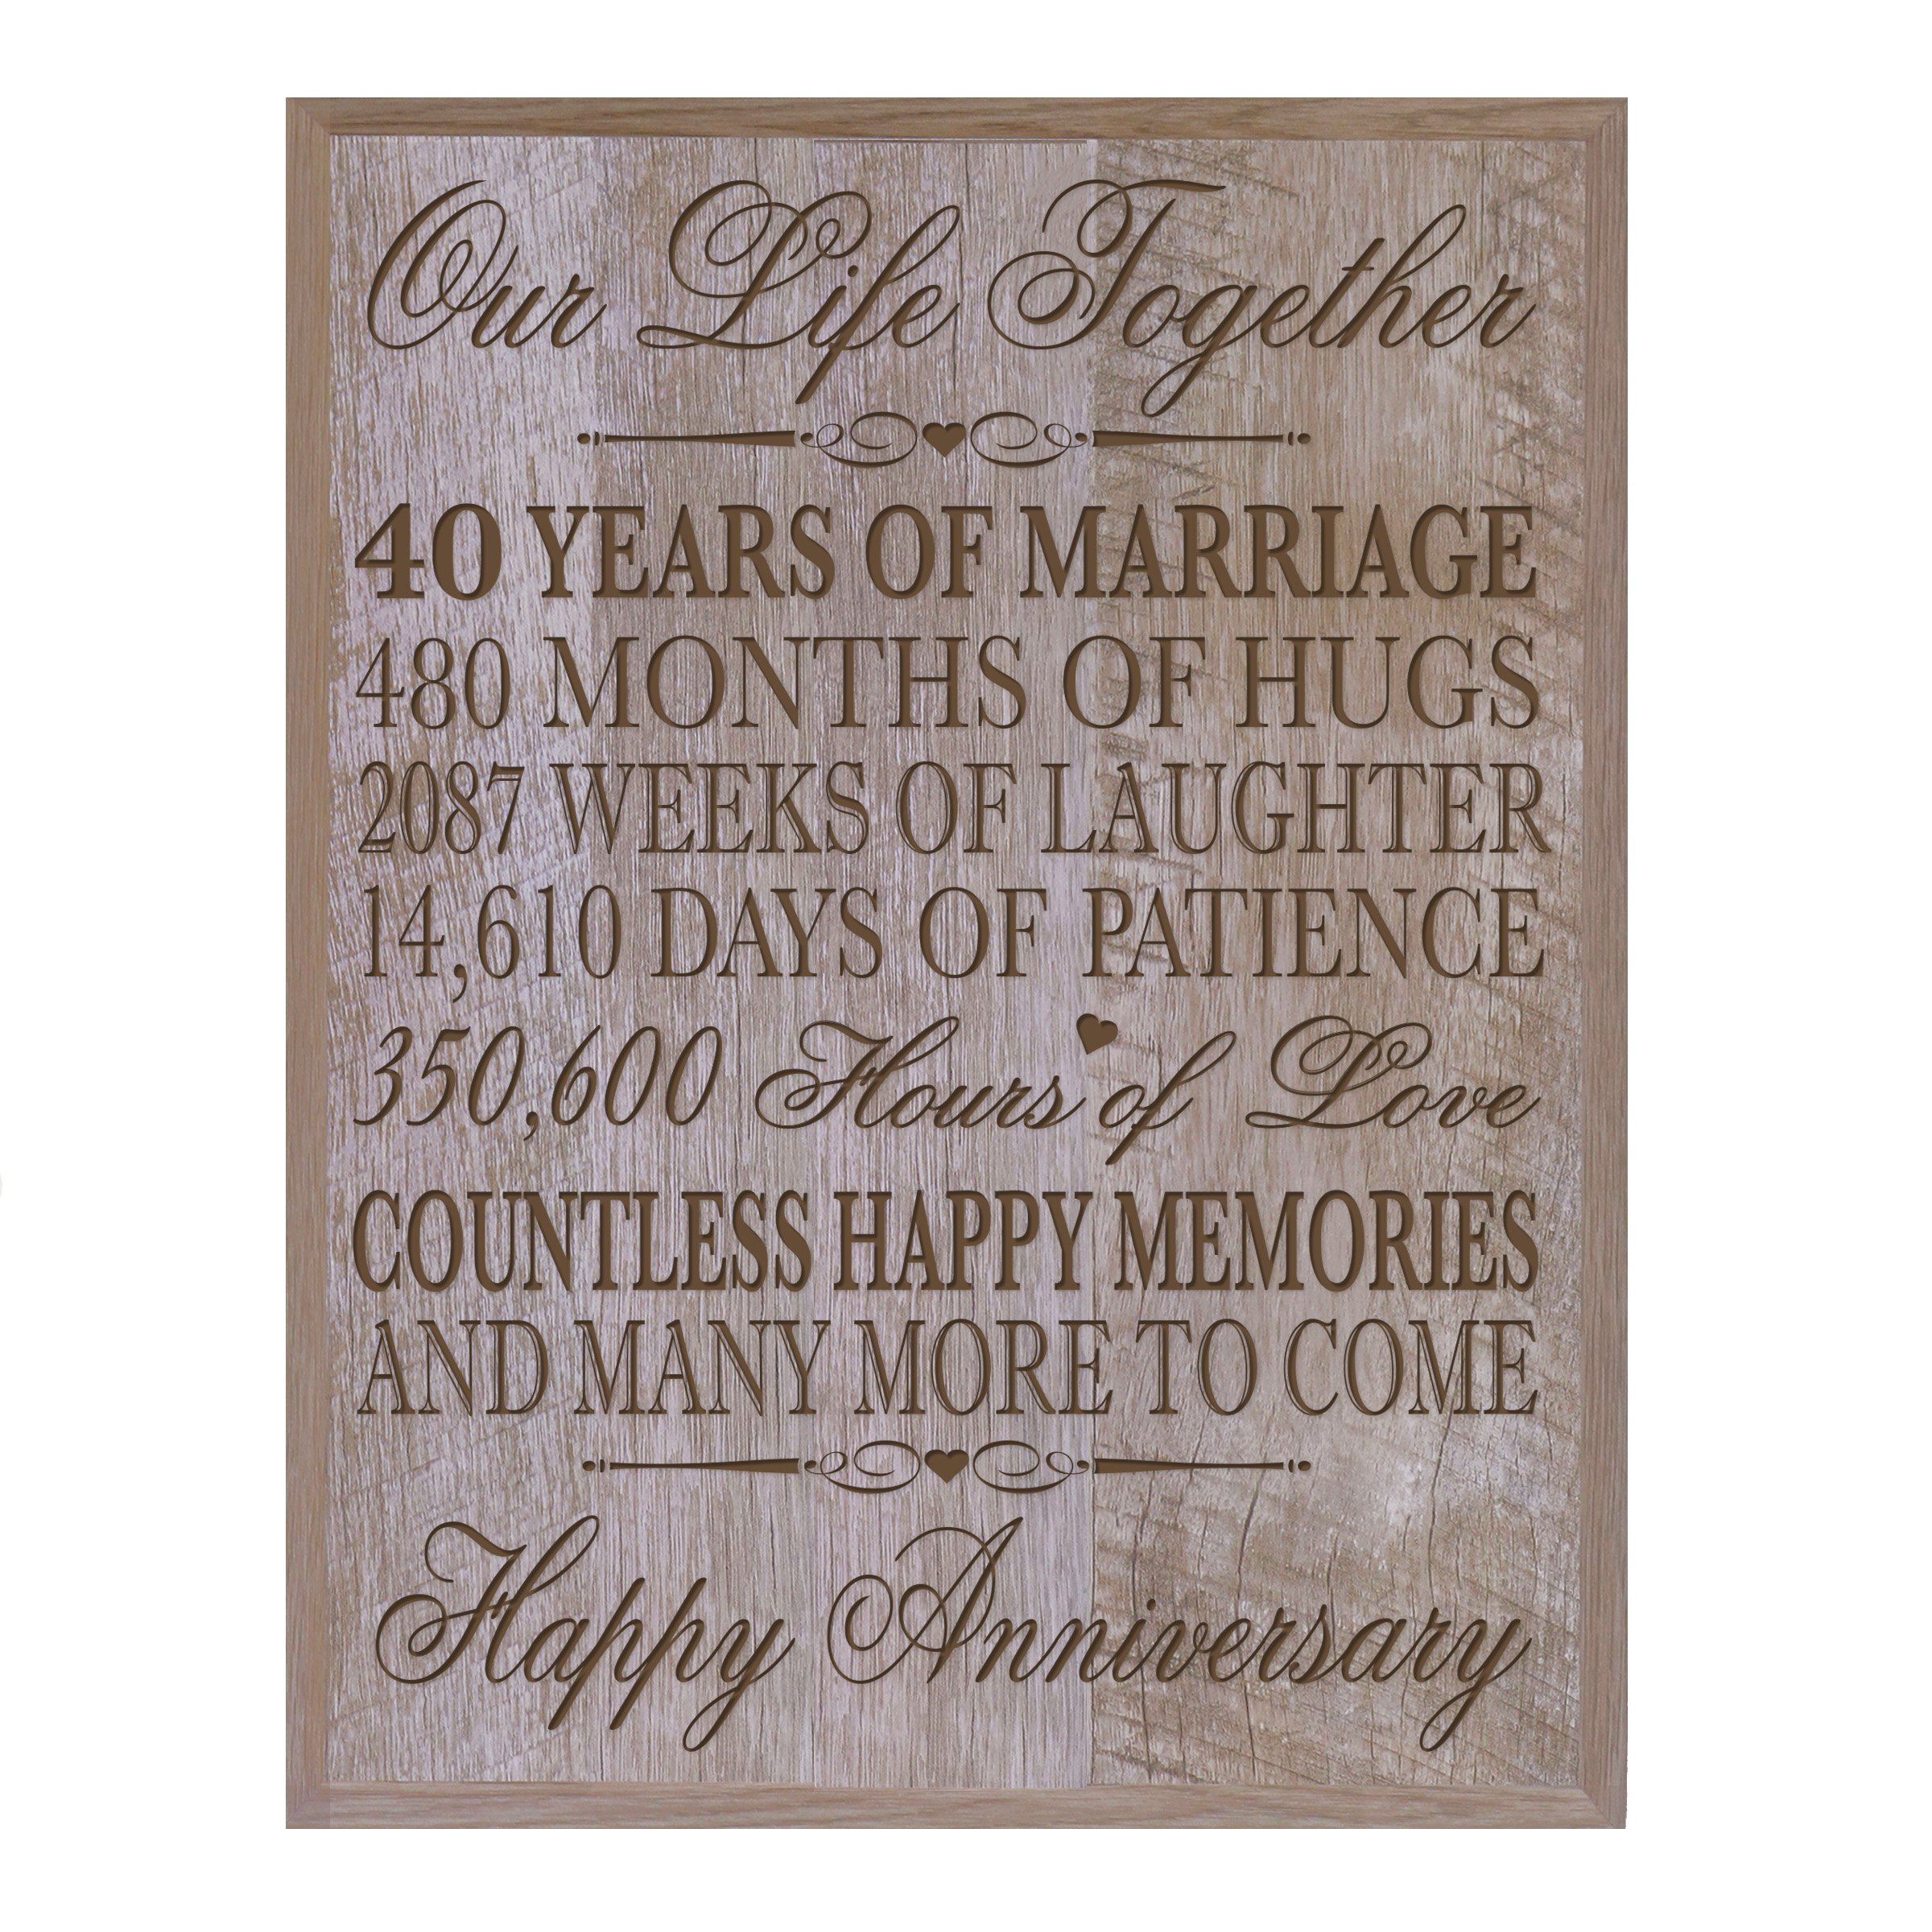 40th Wedding Anniversary Gifts: 40th Anniversary Gifts For Parents: Amazon.com